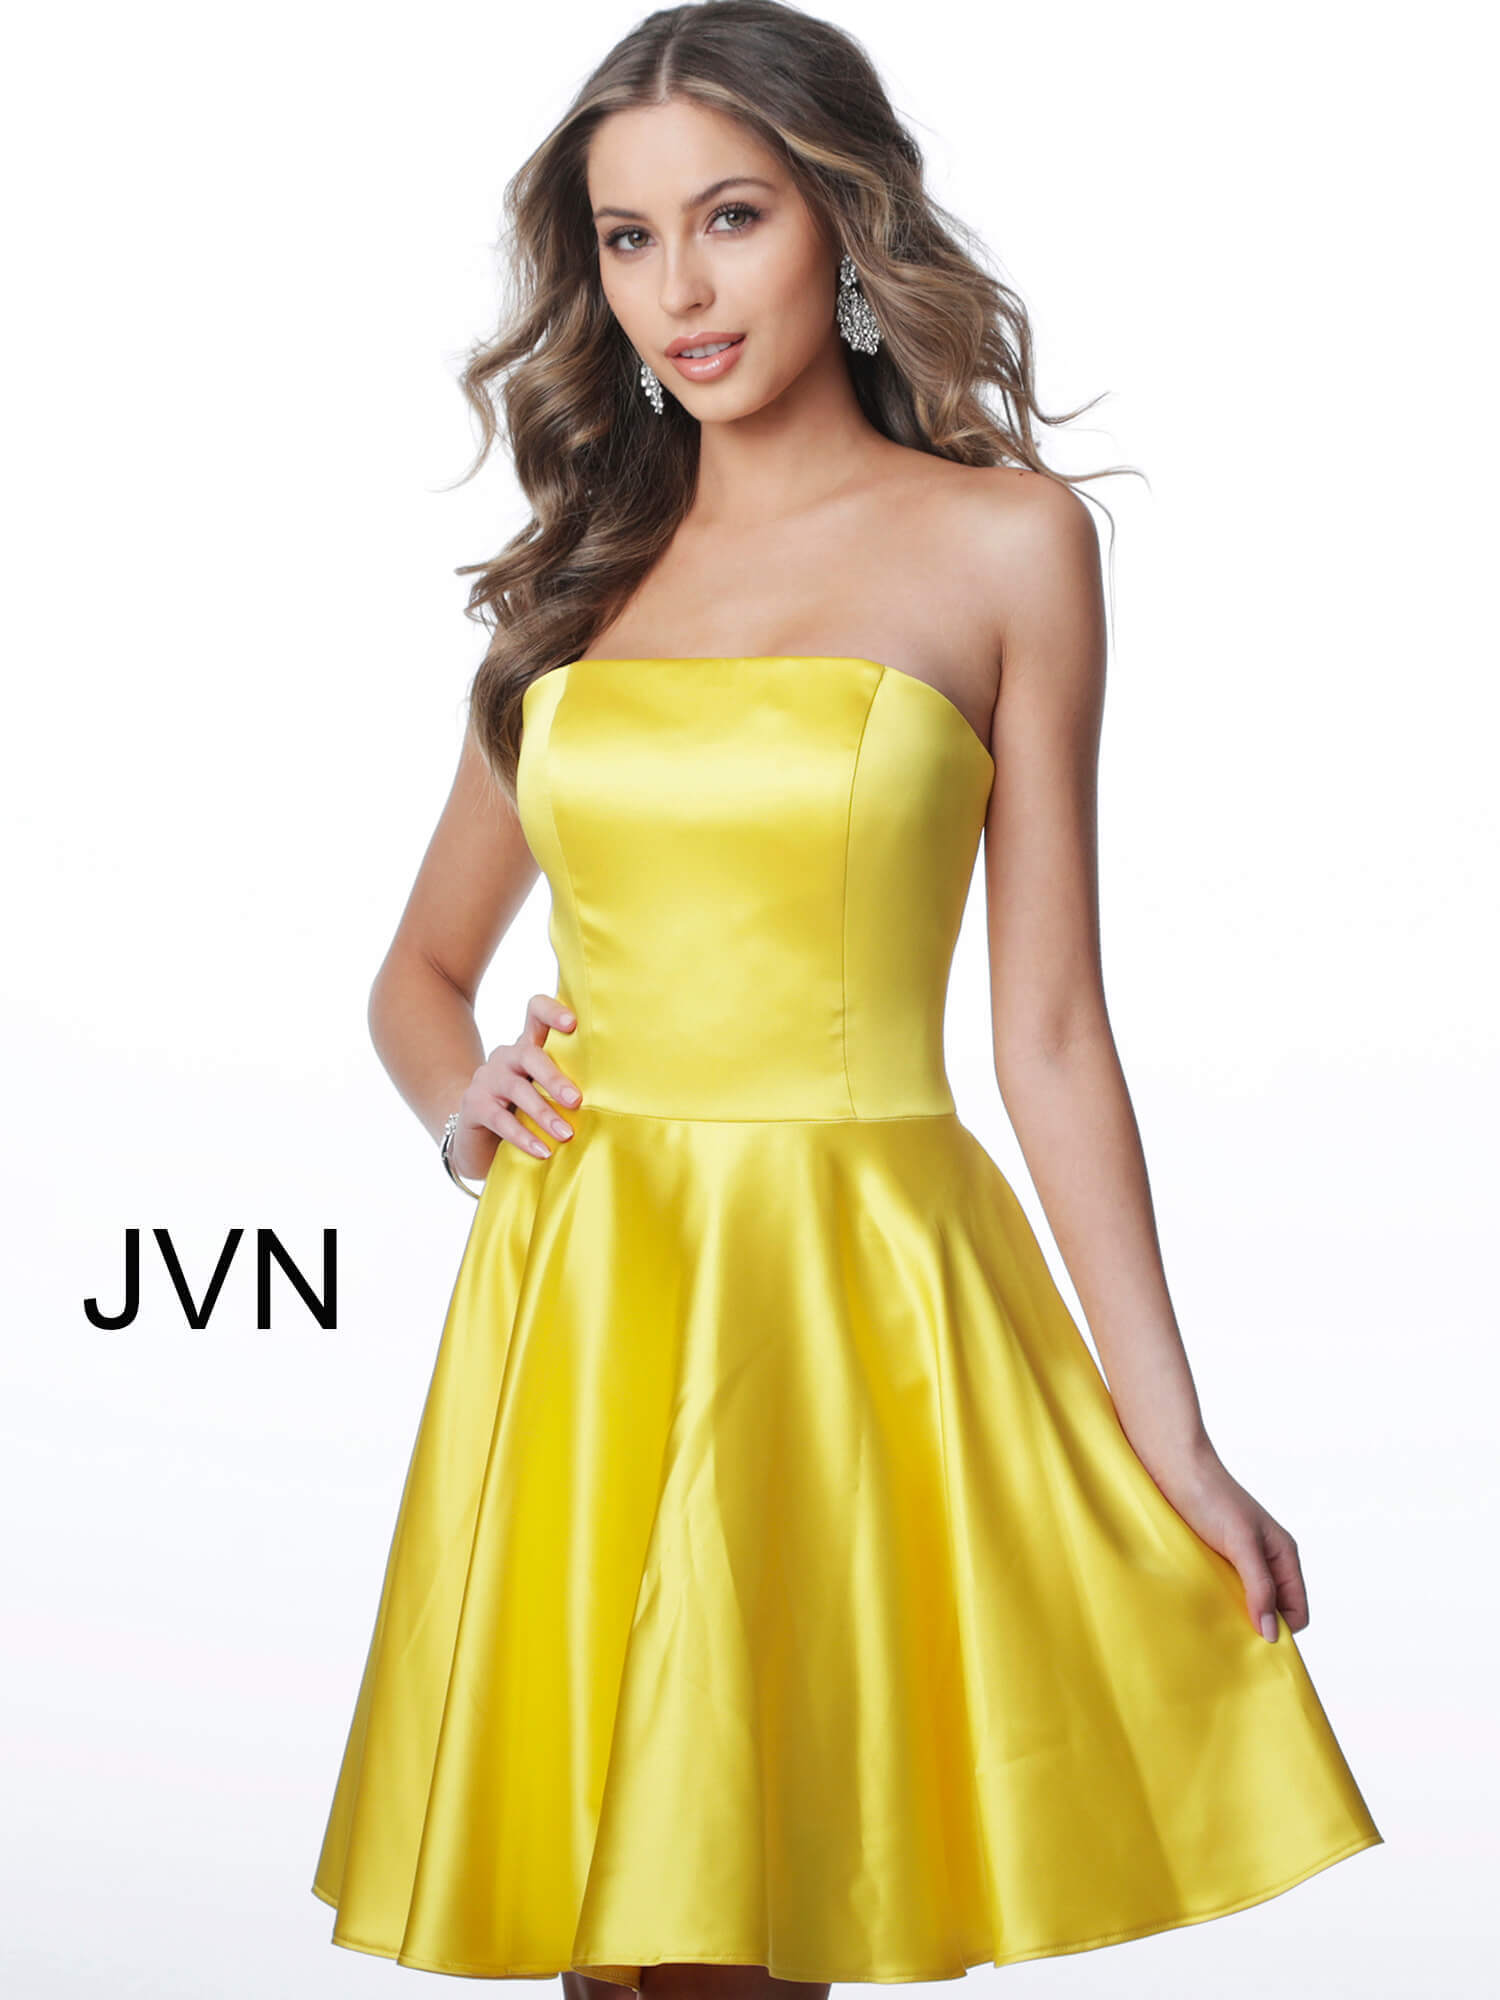 JVN1717 Dress | Yellow short fit and